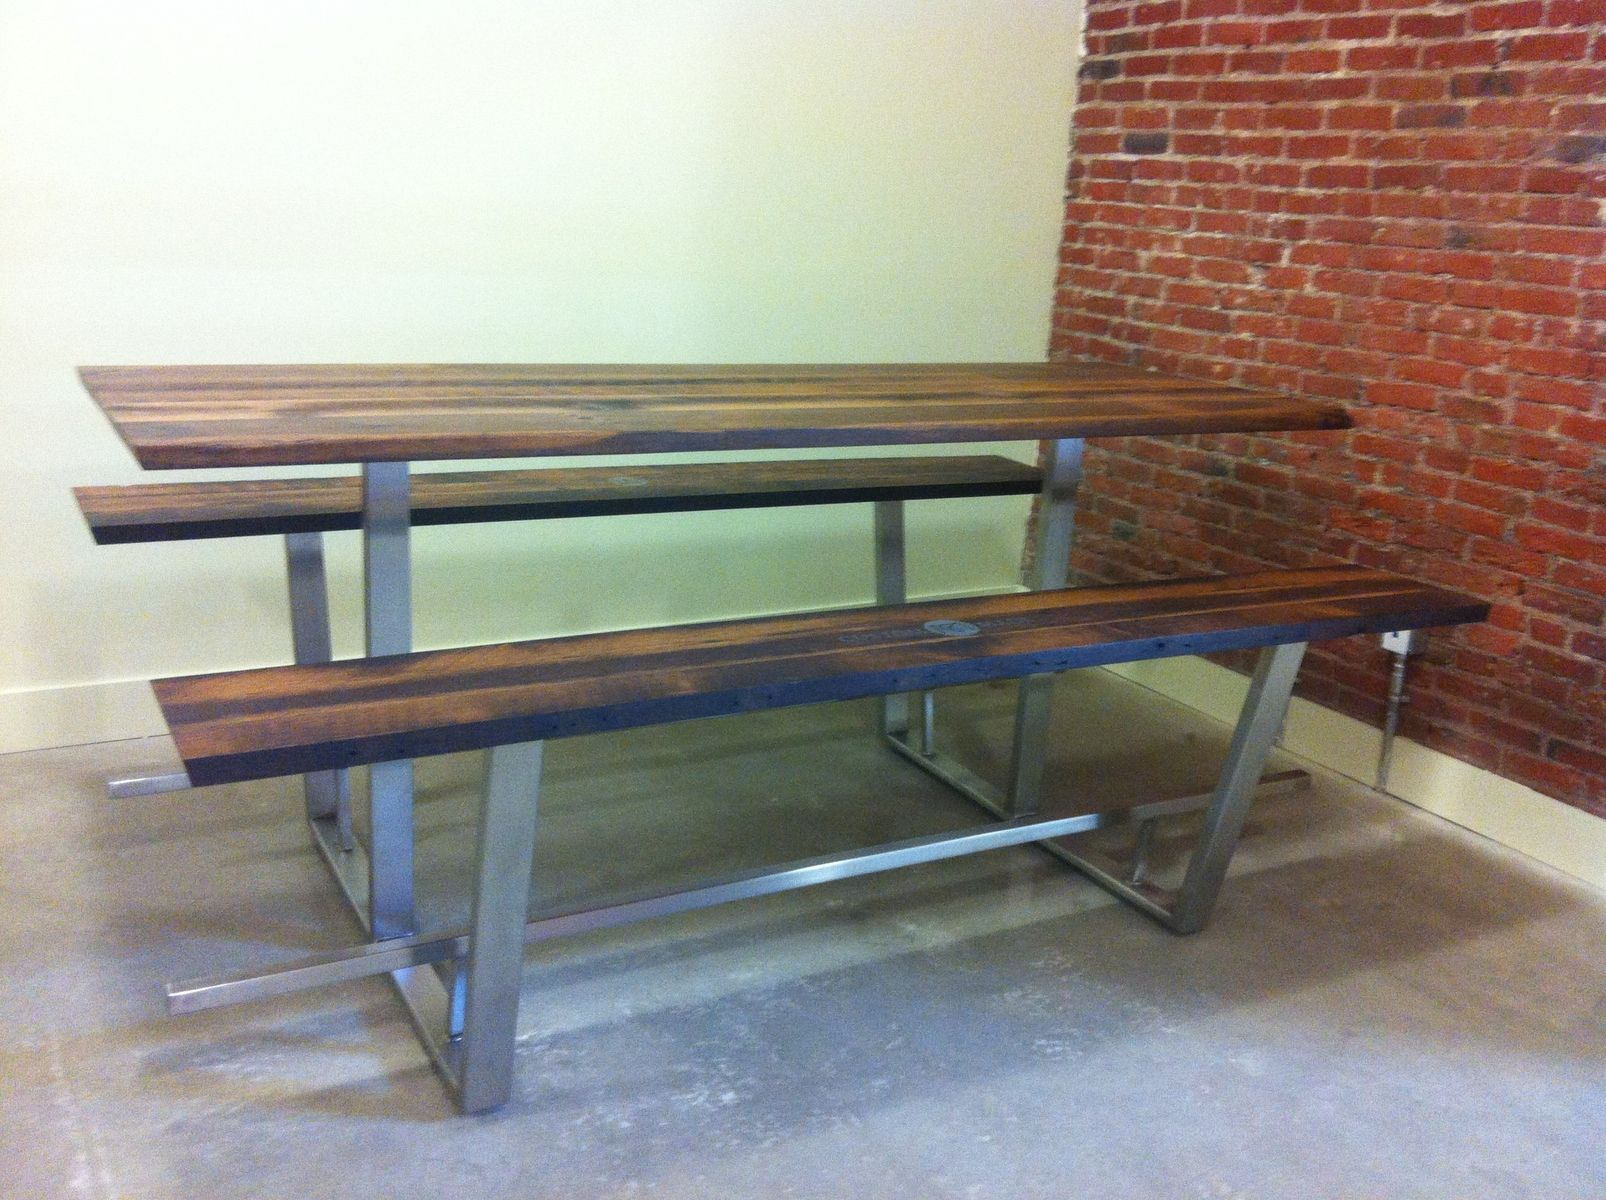 Hand Crafted Custom Picnic Table By Twelvestudio CustomMadecom - Stainless steel picnic table